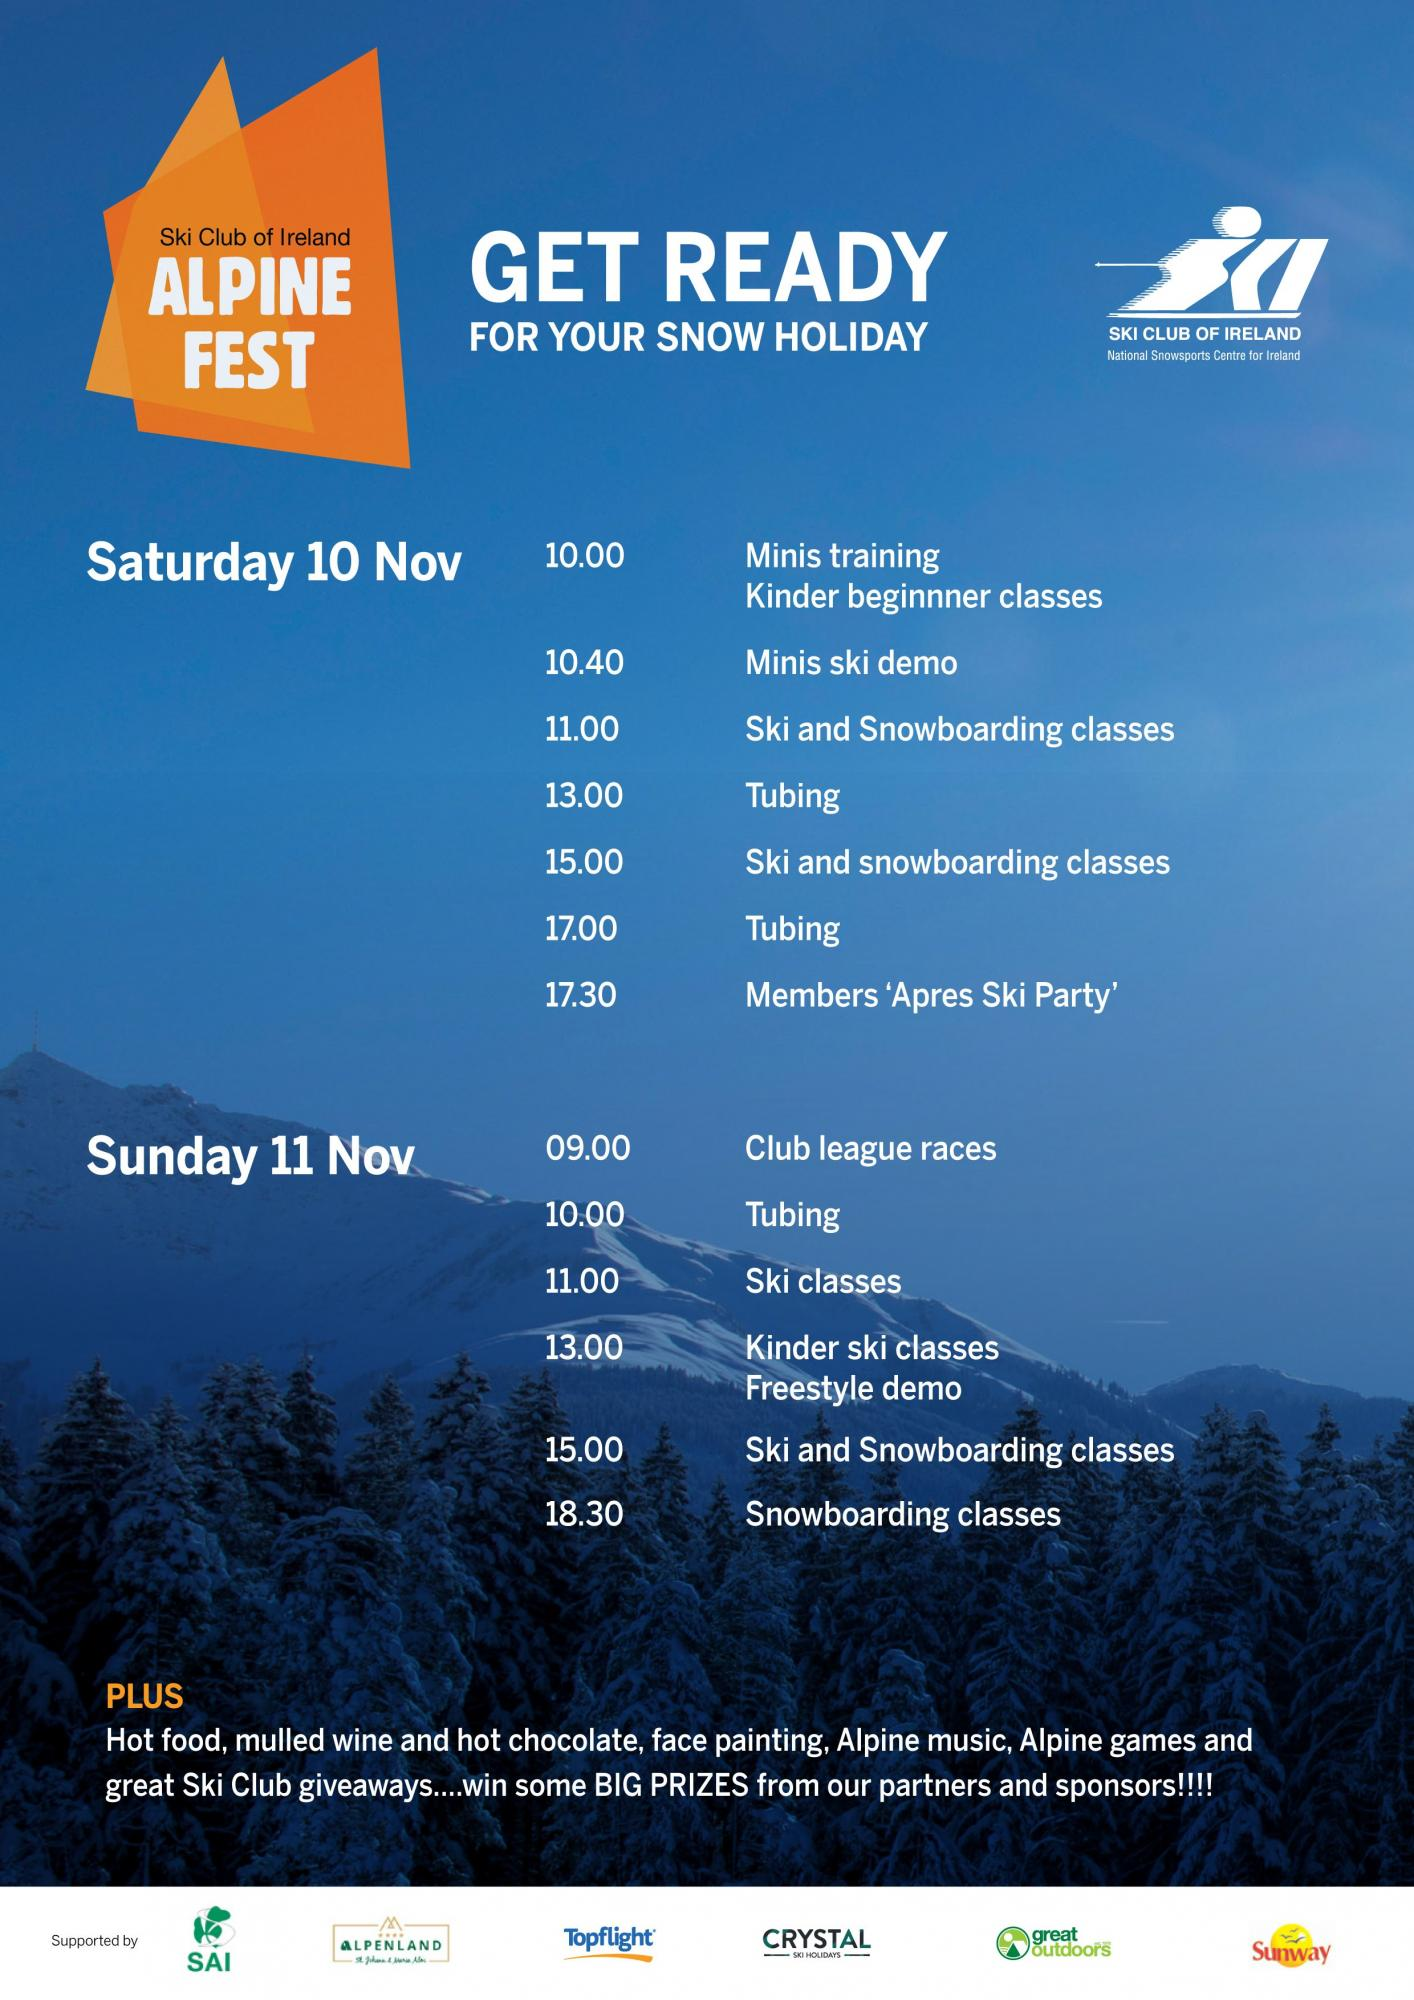 Schedule of activities at Alpine Fest